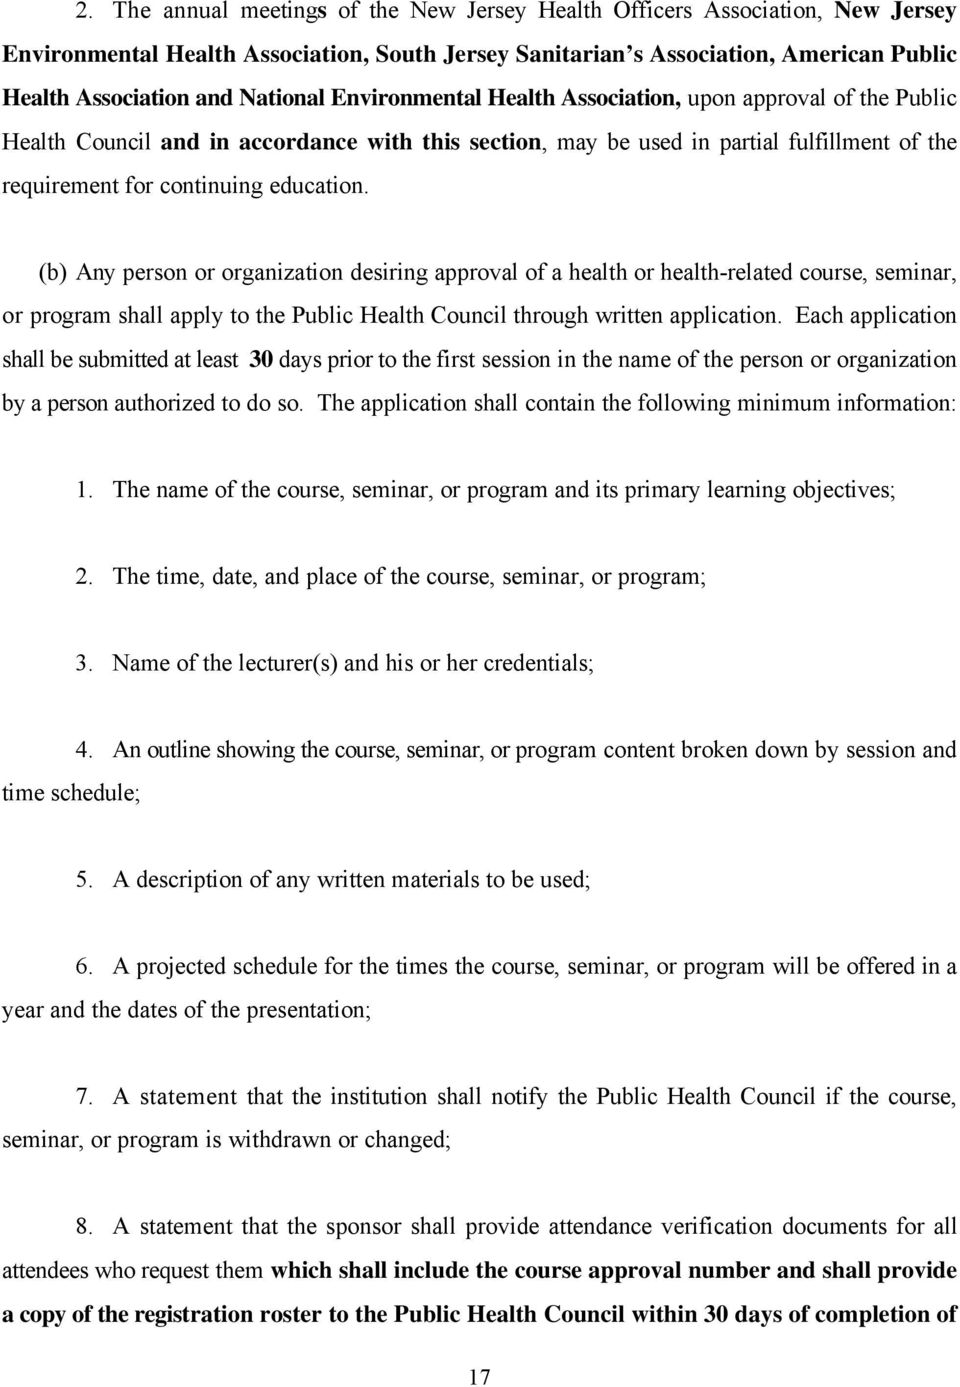 education. (b) Any person or organization desiring approval of a health or health-related course, seminar, or program shall apply to the Public Health Council through written application.